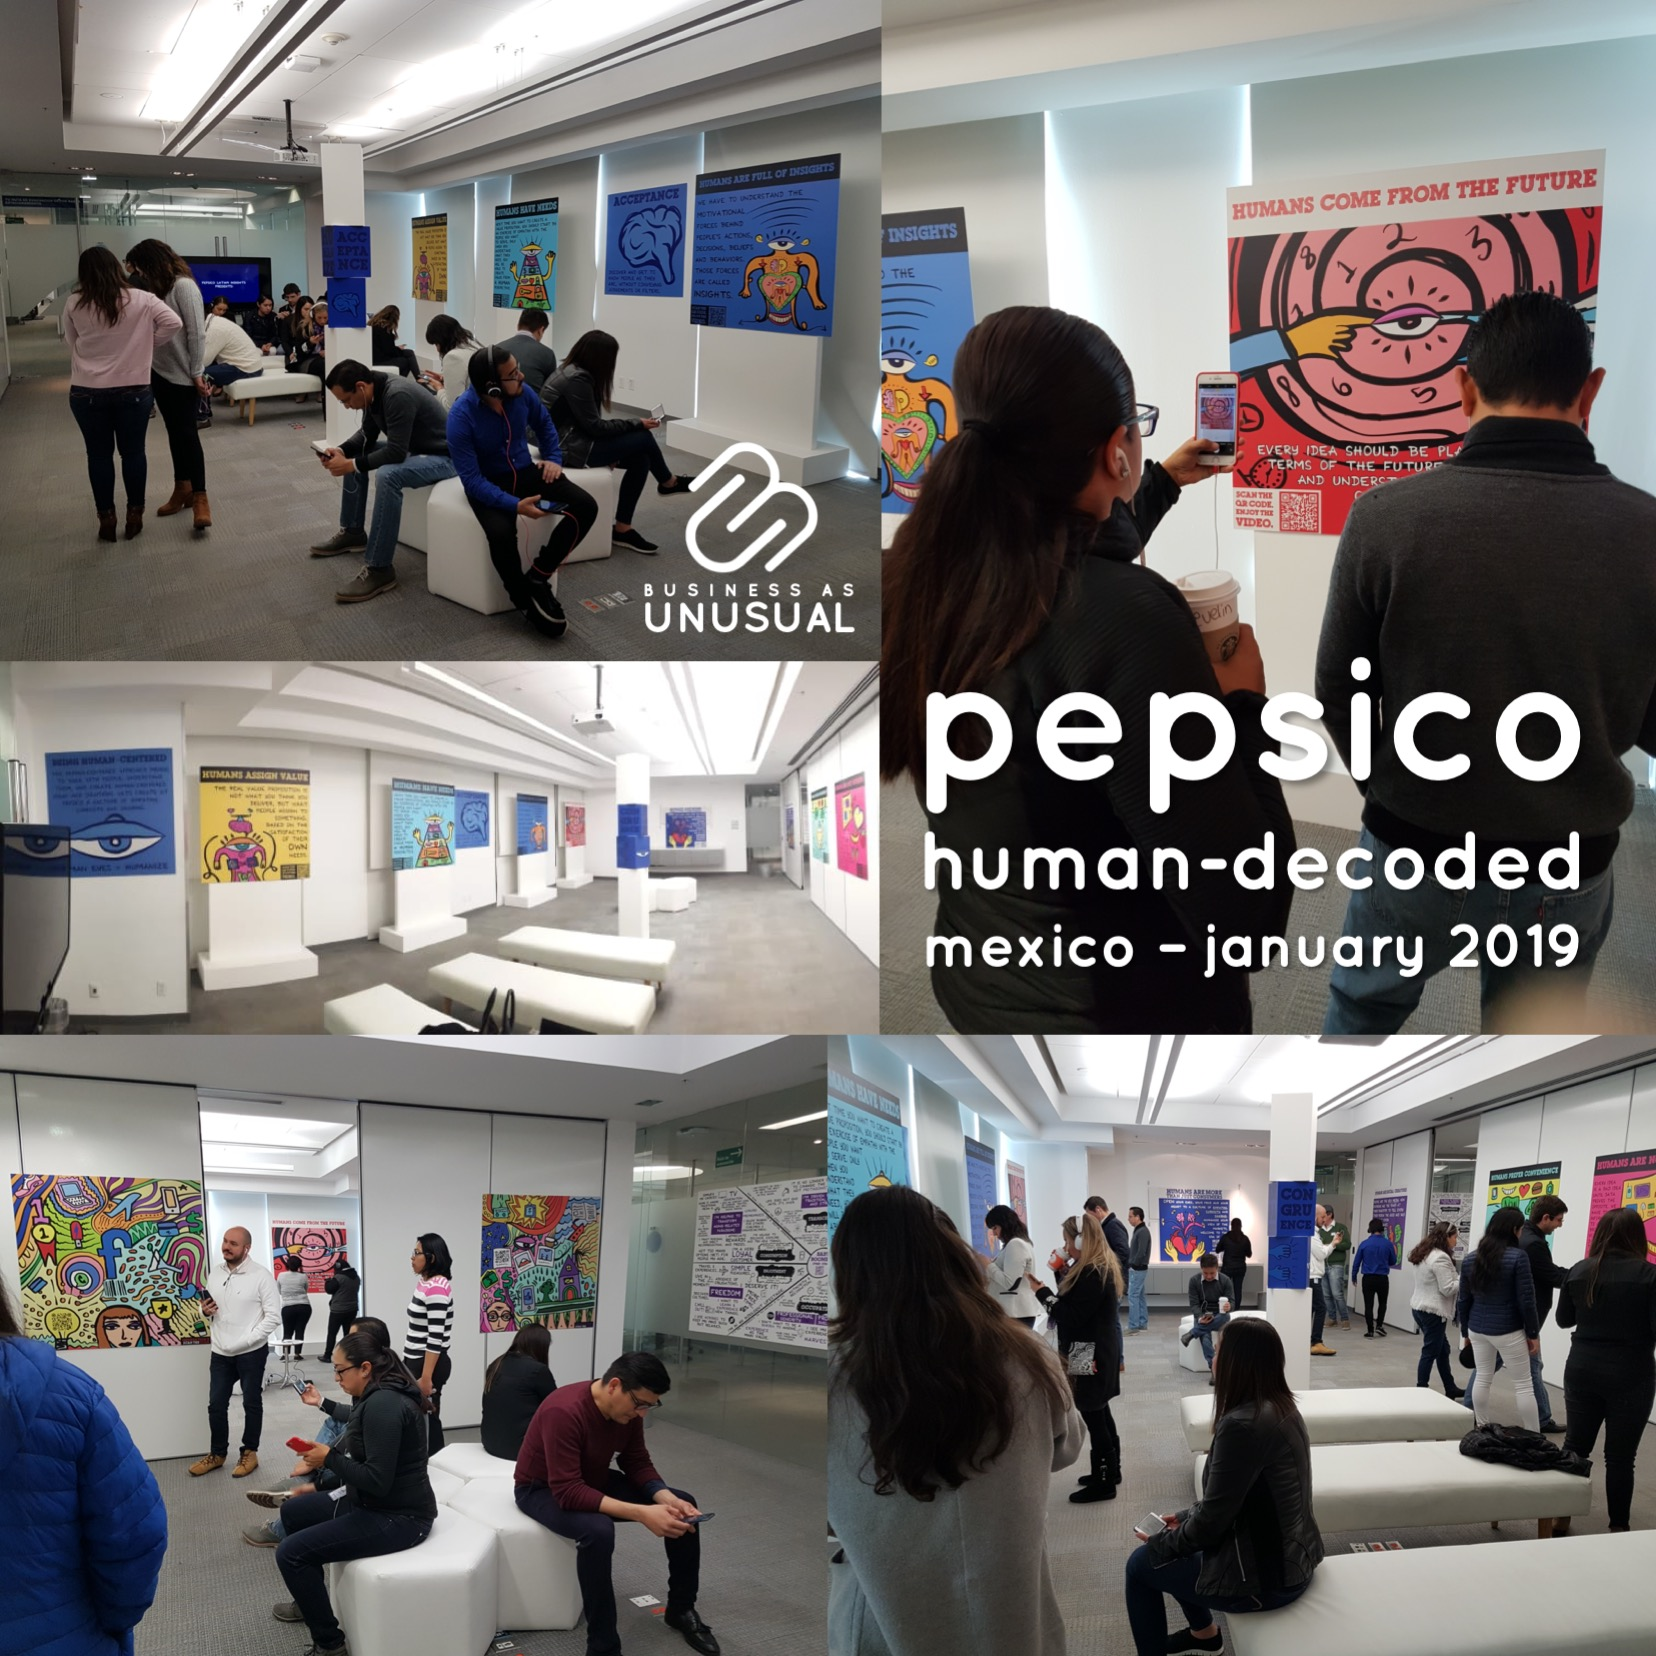 Pepsico - Human Decoded - Mexico January 2019